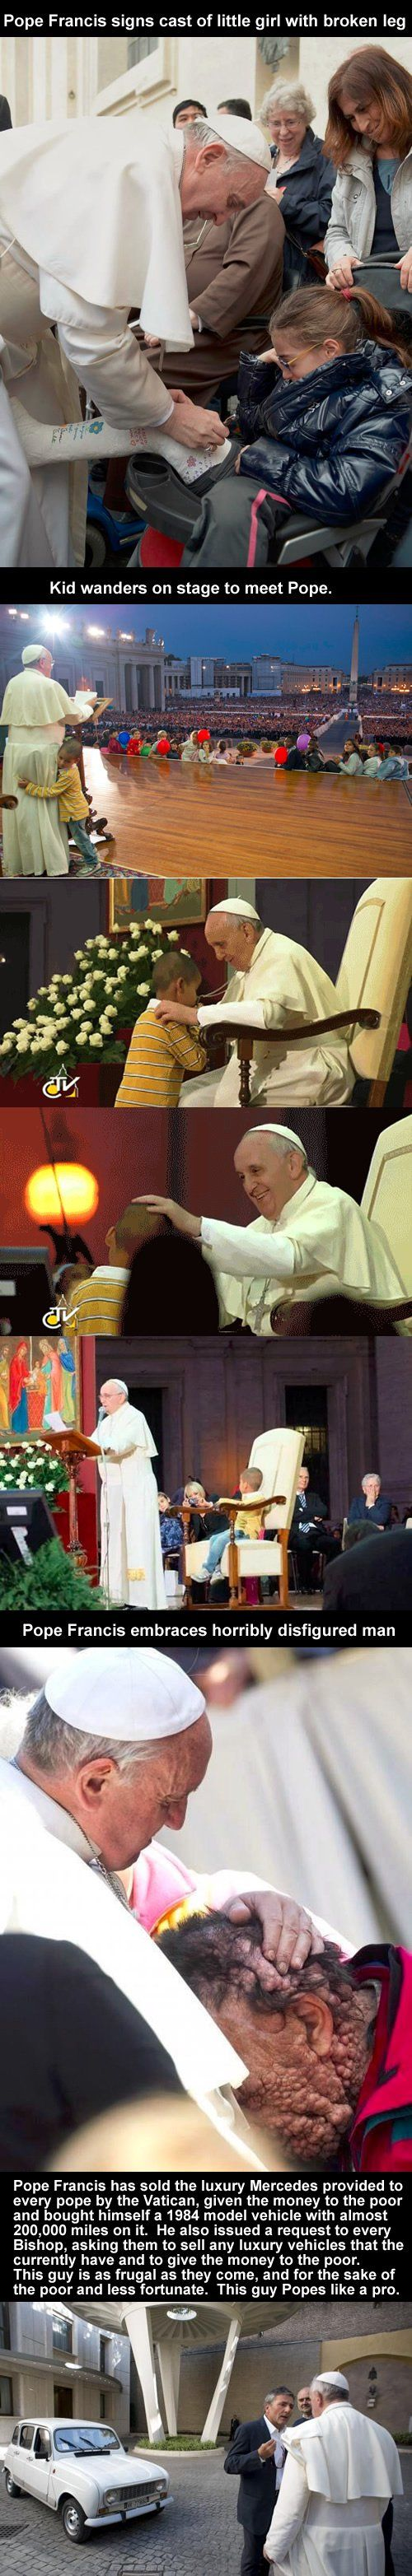 I'm not even Catholic and this guy is my hero.Pope Francis signs cast of little girl with broken leg; Kid wanders on stage to meet Pope; Pope Francis embraces horribly disfigured man.